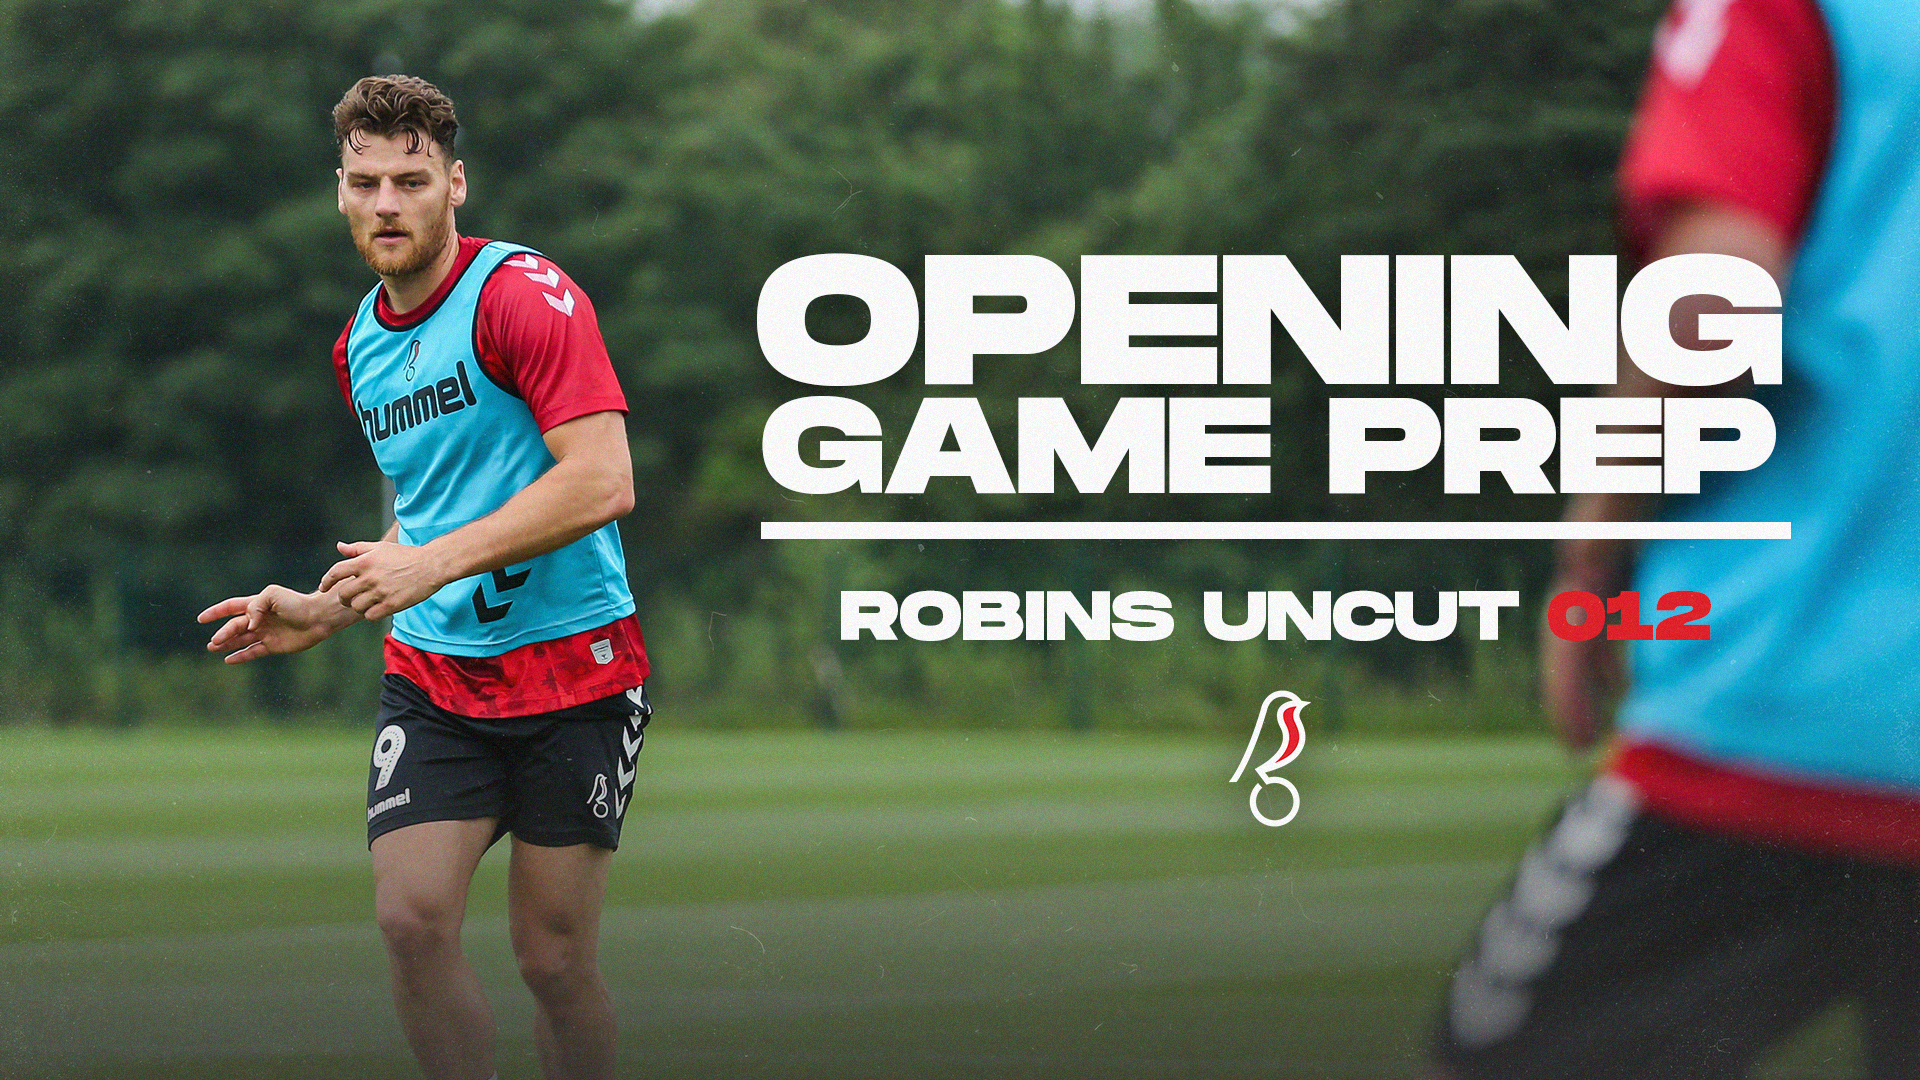 Opening game preparations | Robins Uncut 012